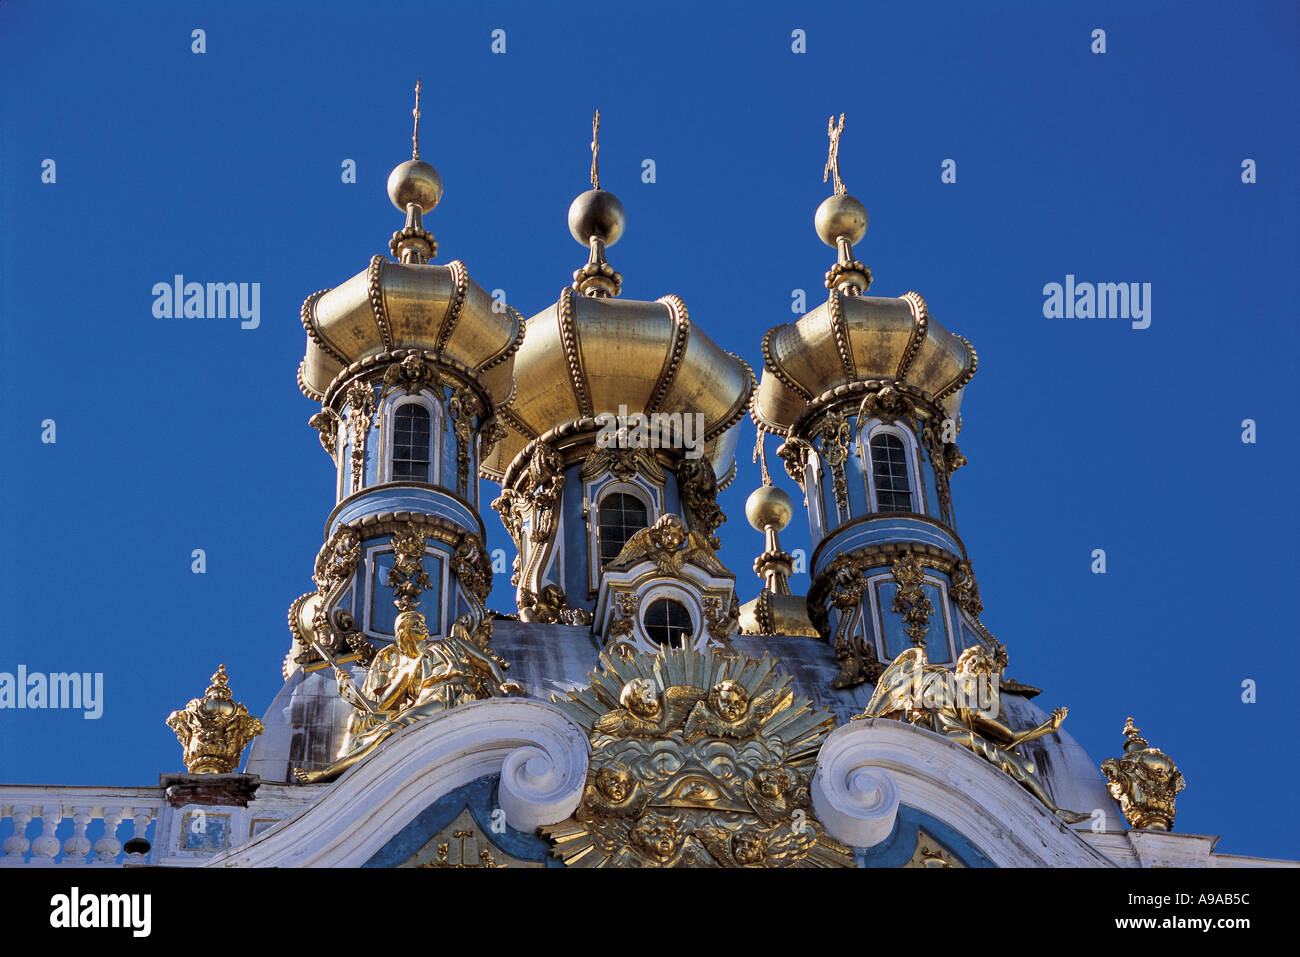 Russia Tsarskoe Selo gilded cupolas on the Chapel of Catherine Palace near St Petersburg - Stock Image